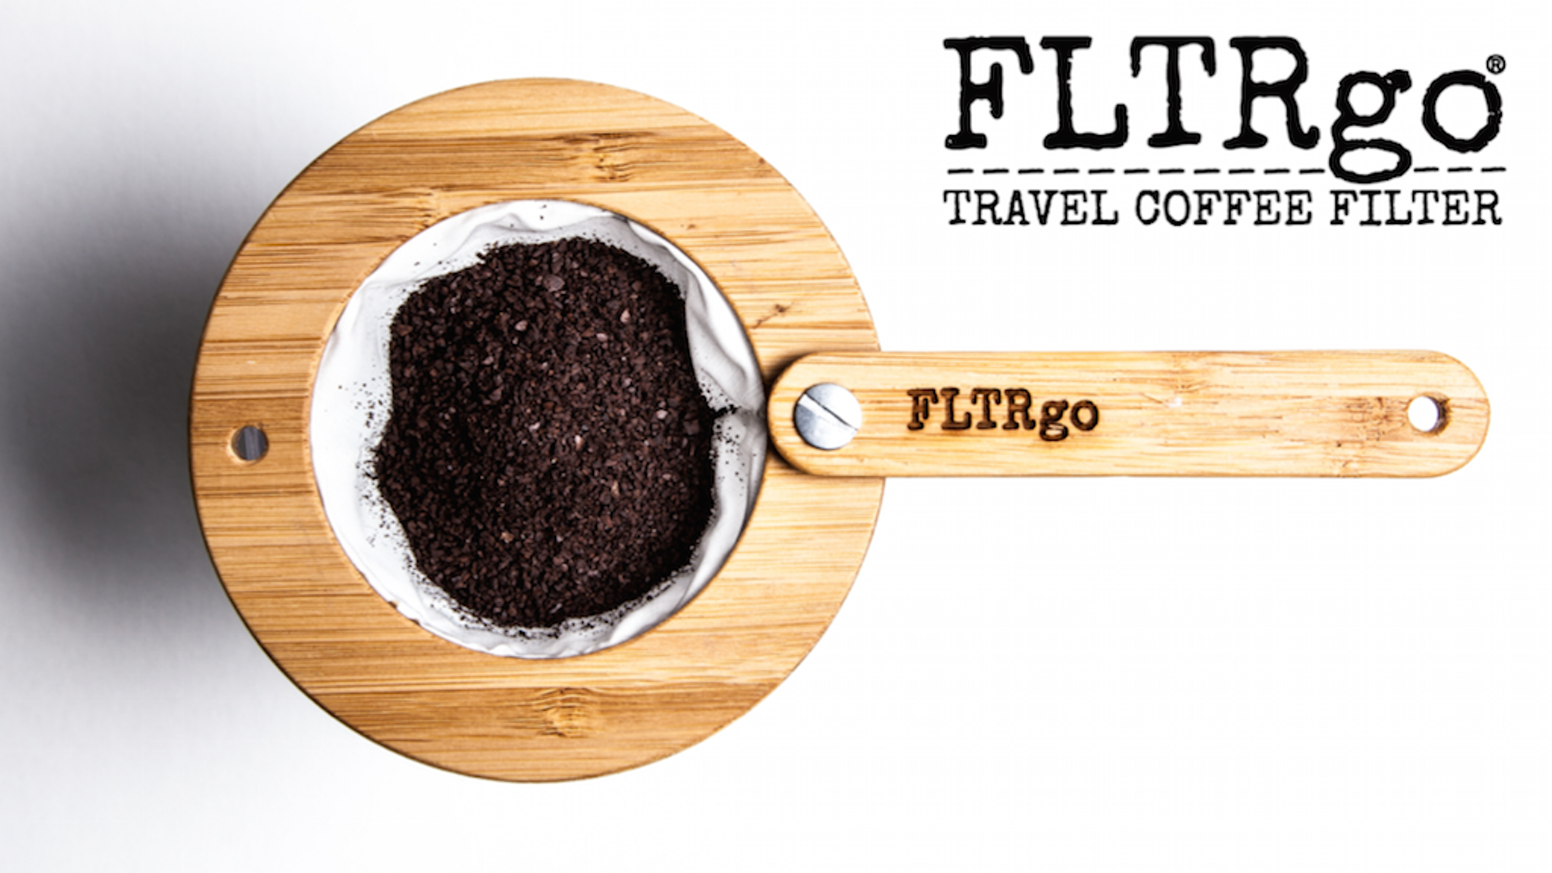 Perfect for camping, travel & home use. The FLTRgo is a sustainable coffee filter that can be re-used hundreds of times!